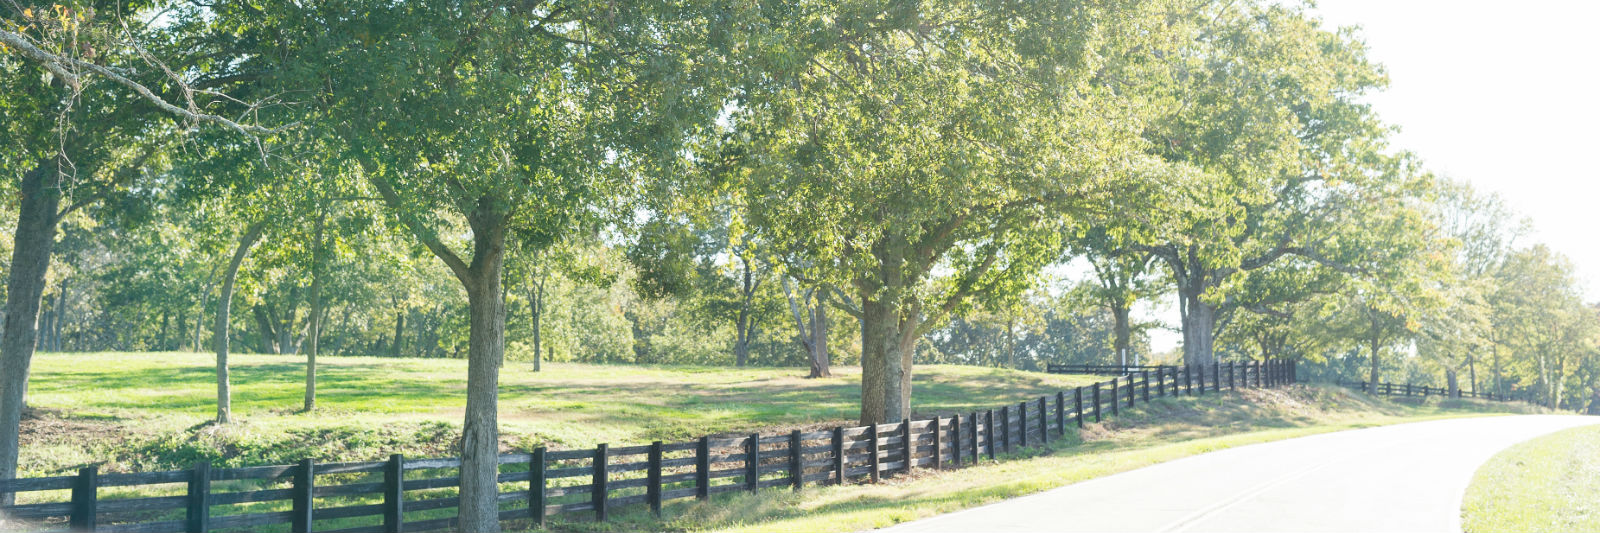 Tree lined path with fence